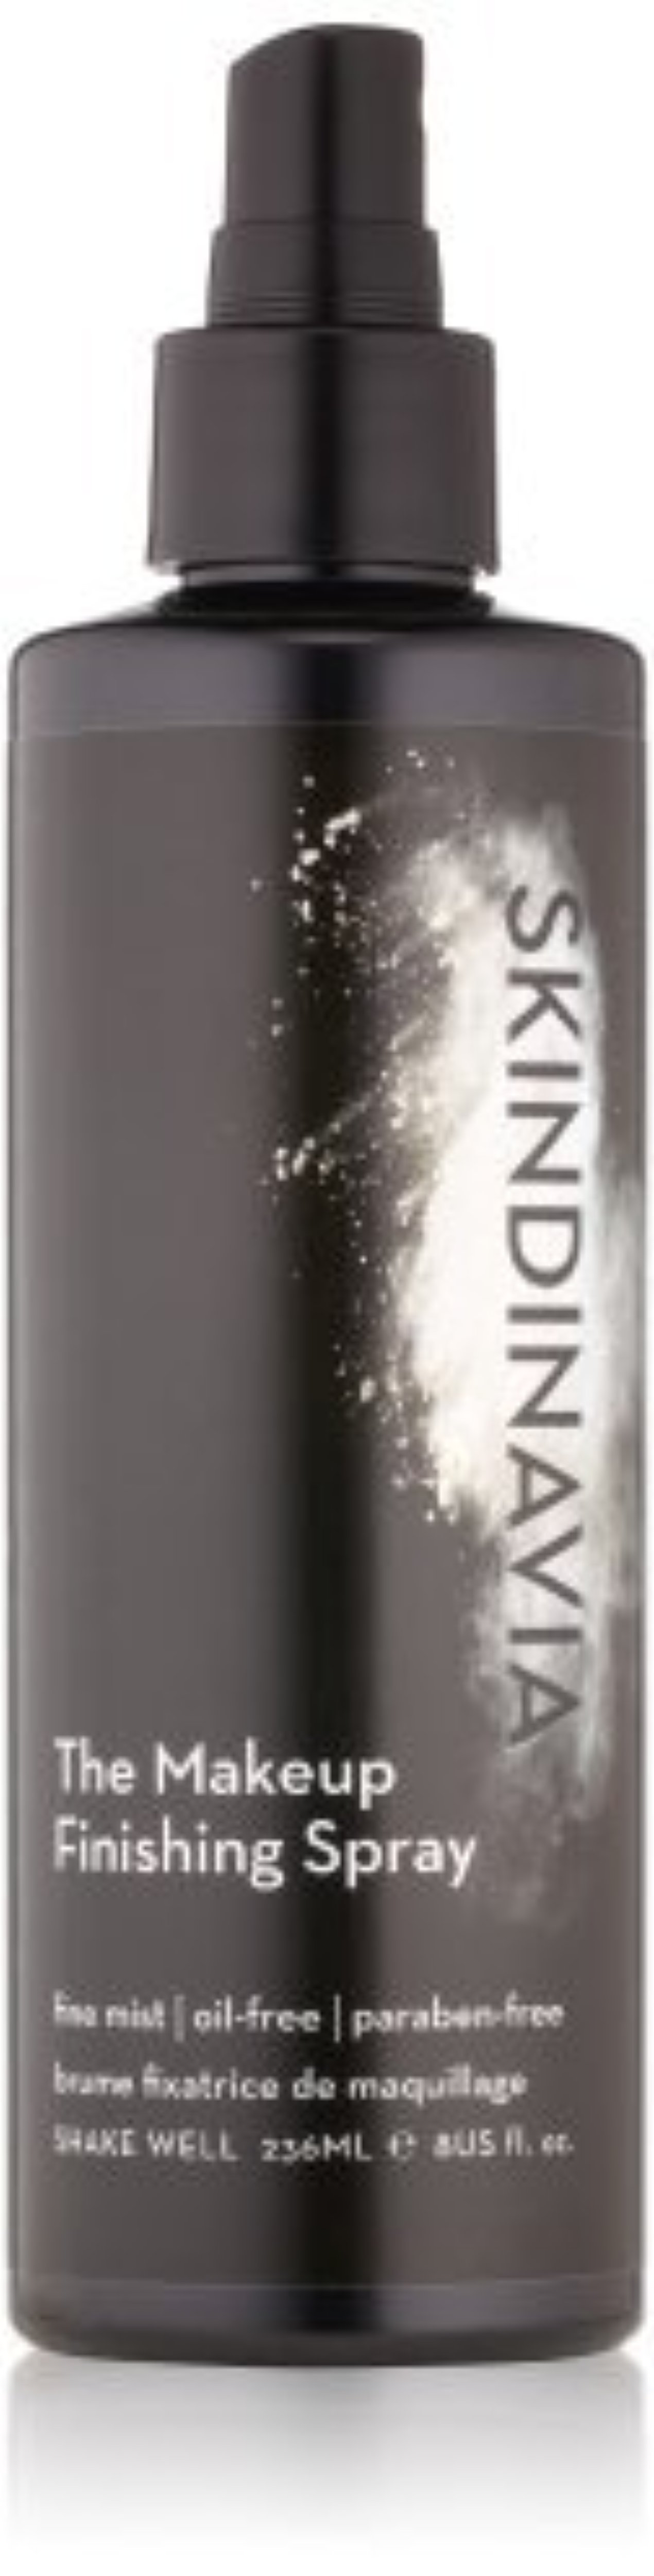 Skindinavia The Makeup Finishing Spray, 8 Fluid Ounce by